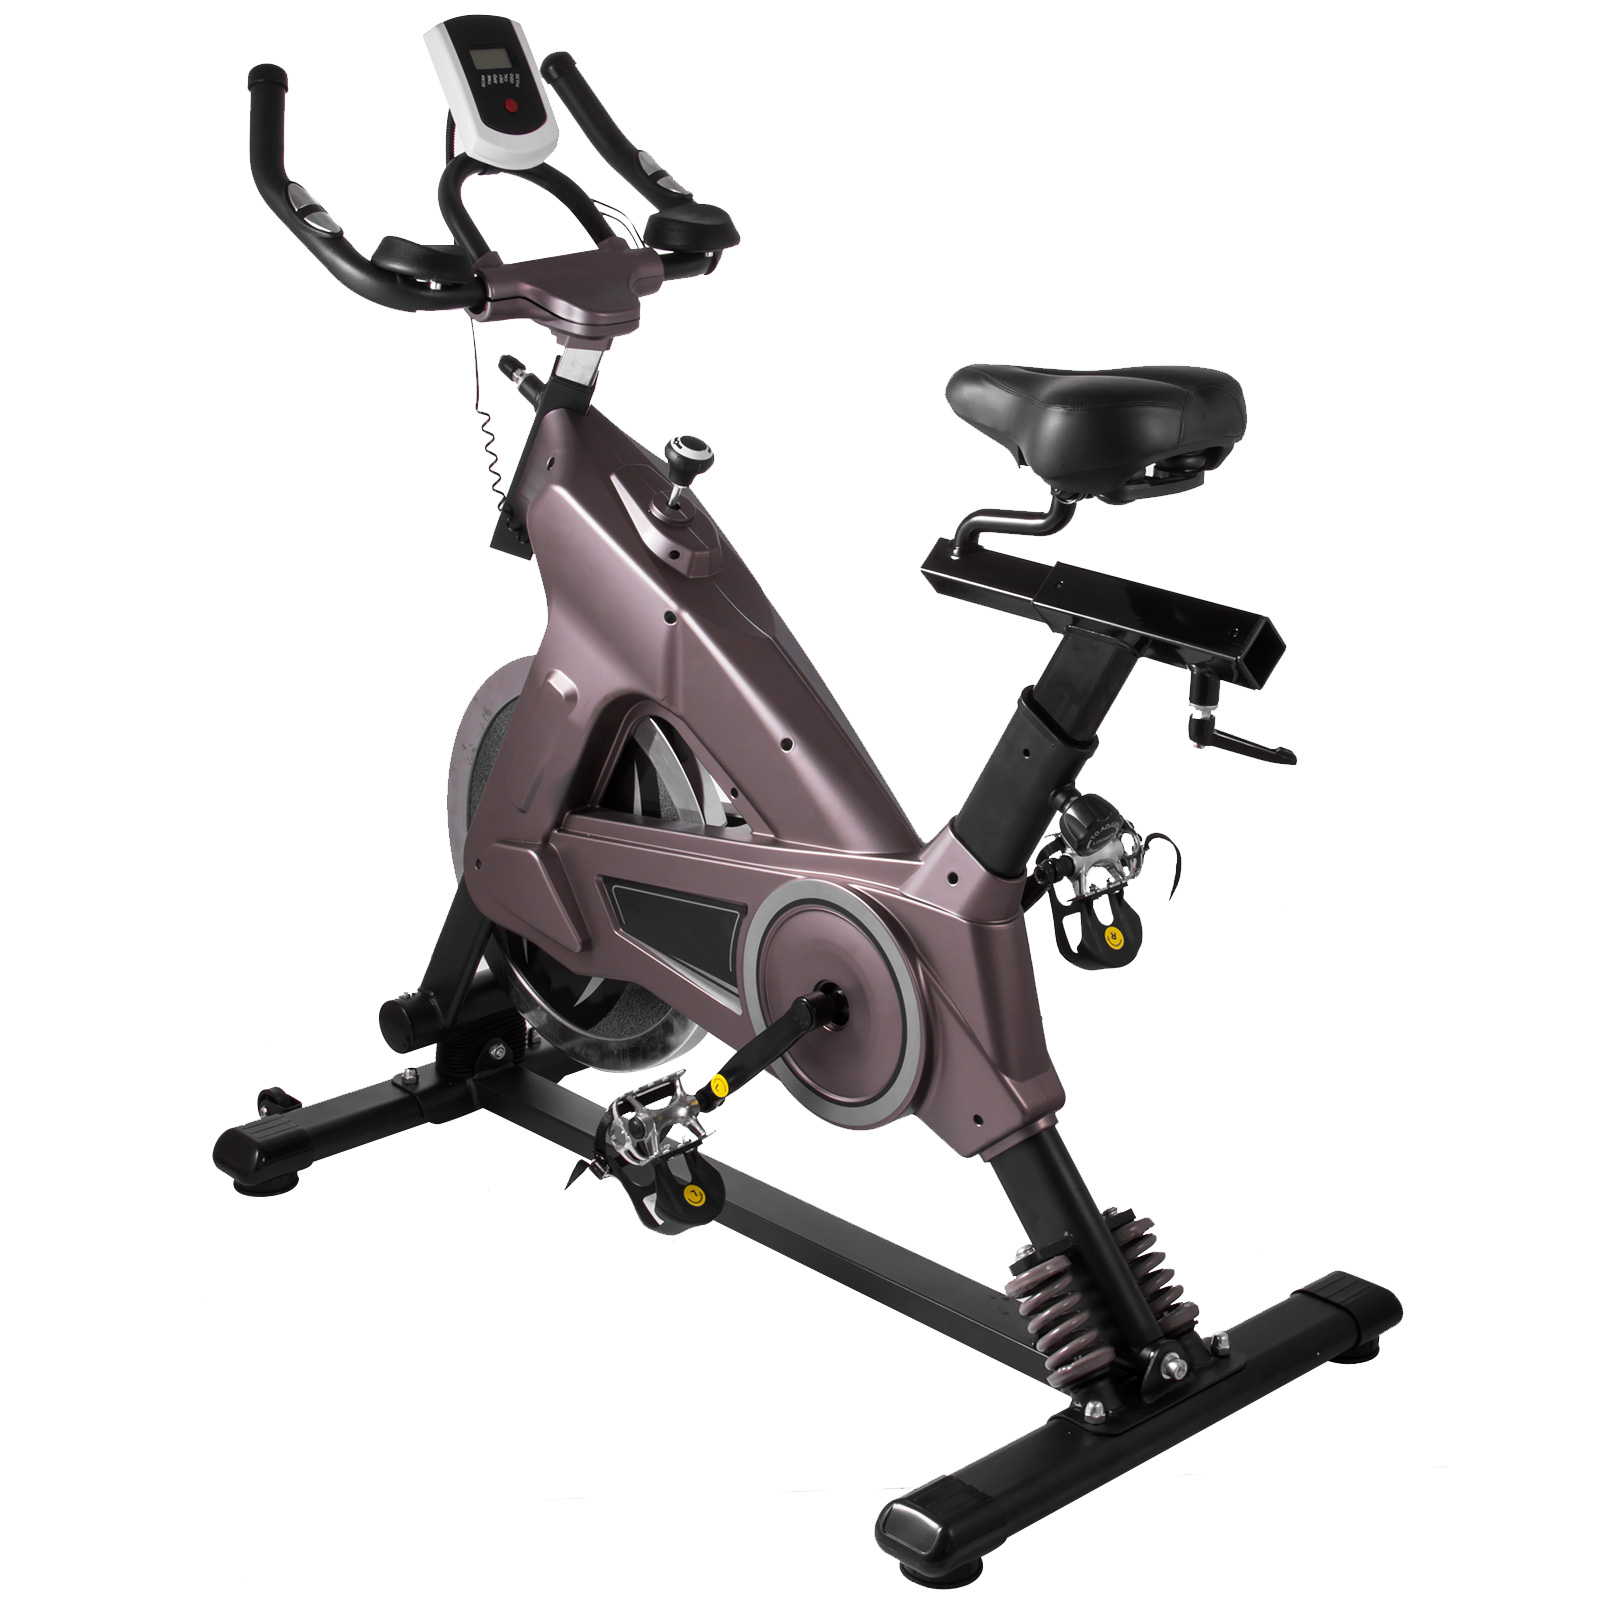 Multi-style-Magnetic-Exercise-Bike-office-Bicycle-under-Desk-Fitness-Cardio miniature 155